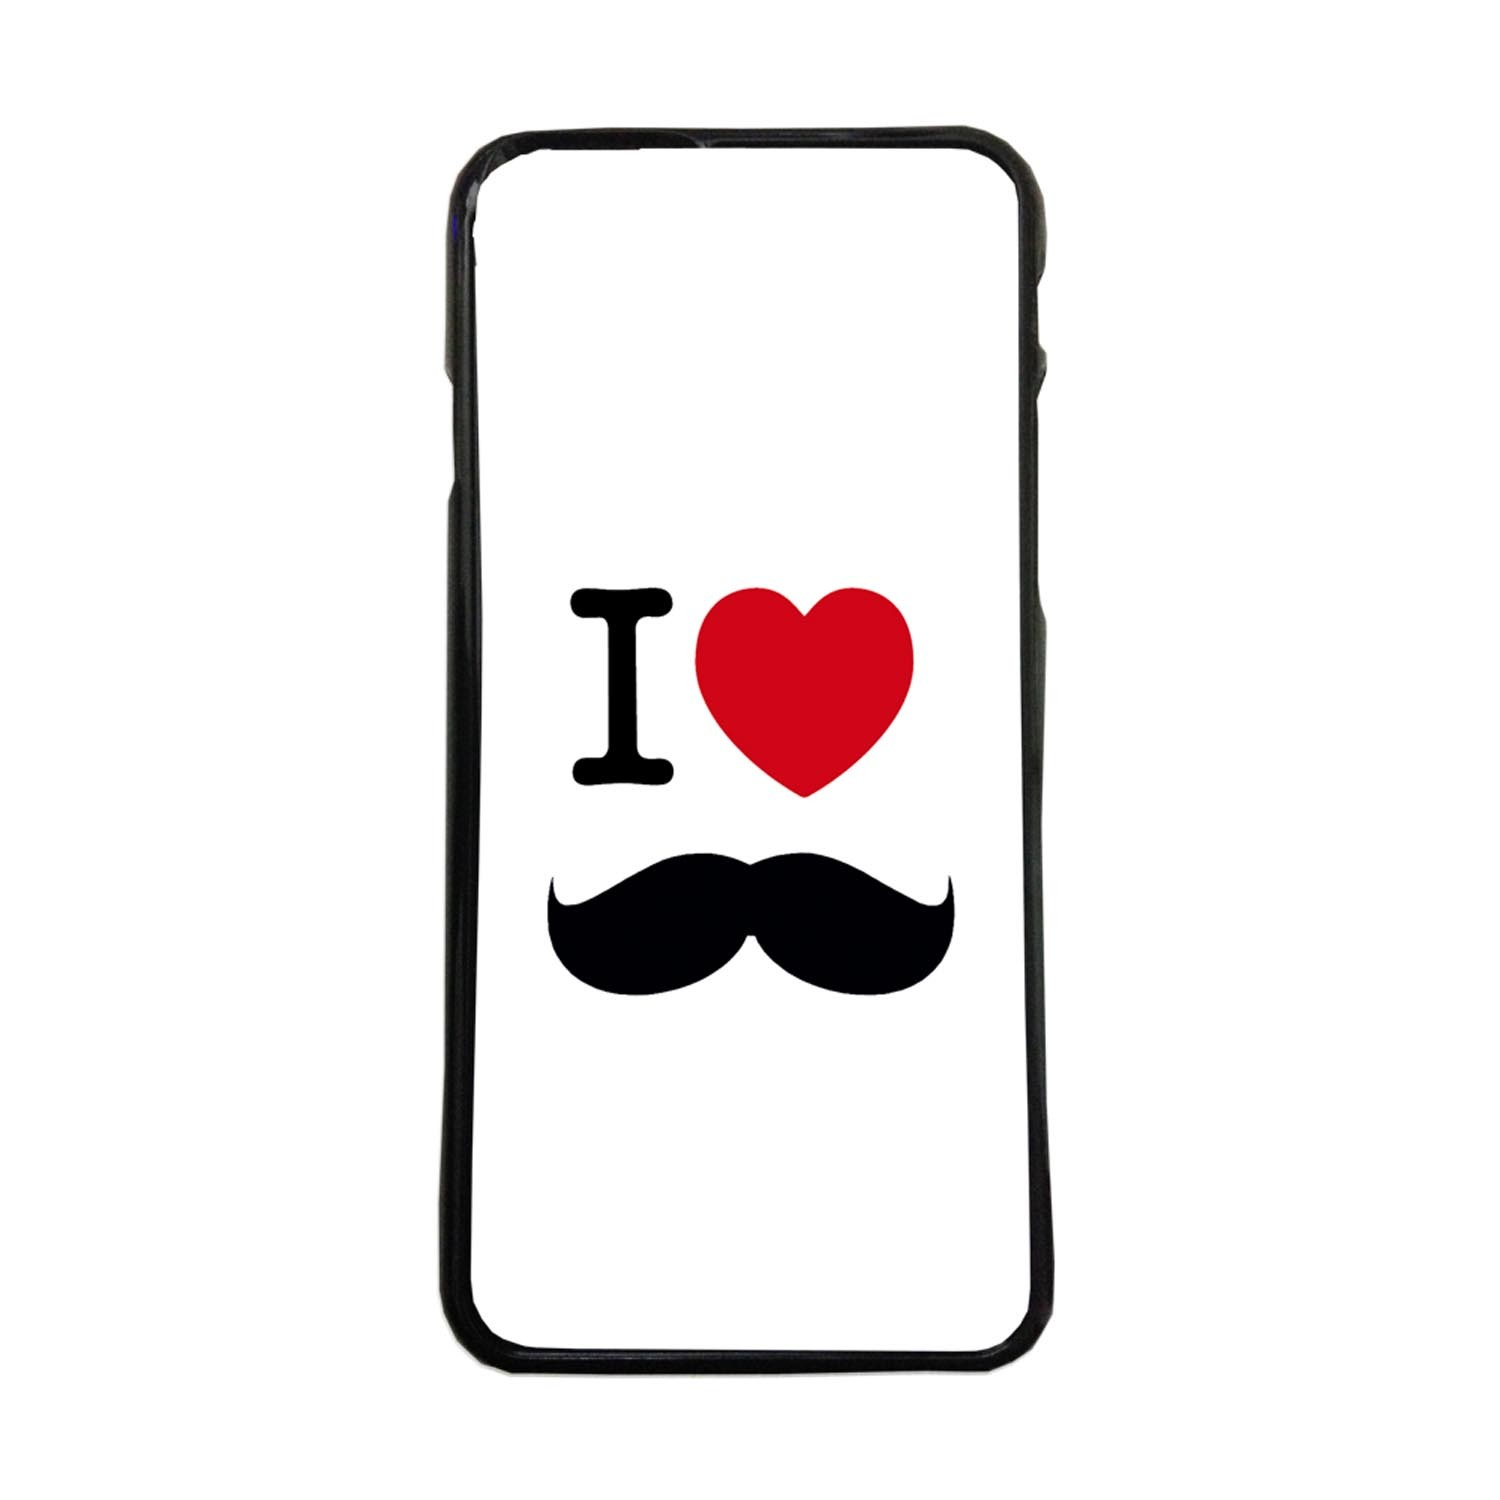 Fundas movil carcasas compatible con samsung galaxy j7 2017 I love bigotes